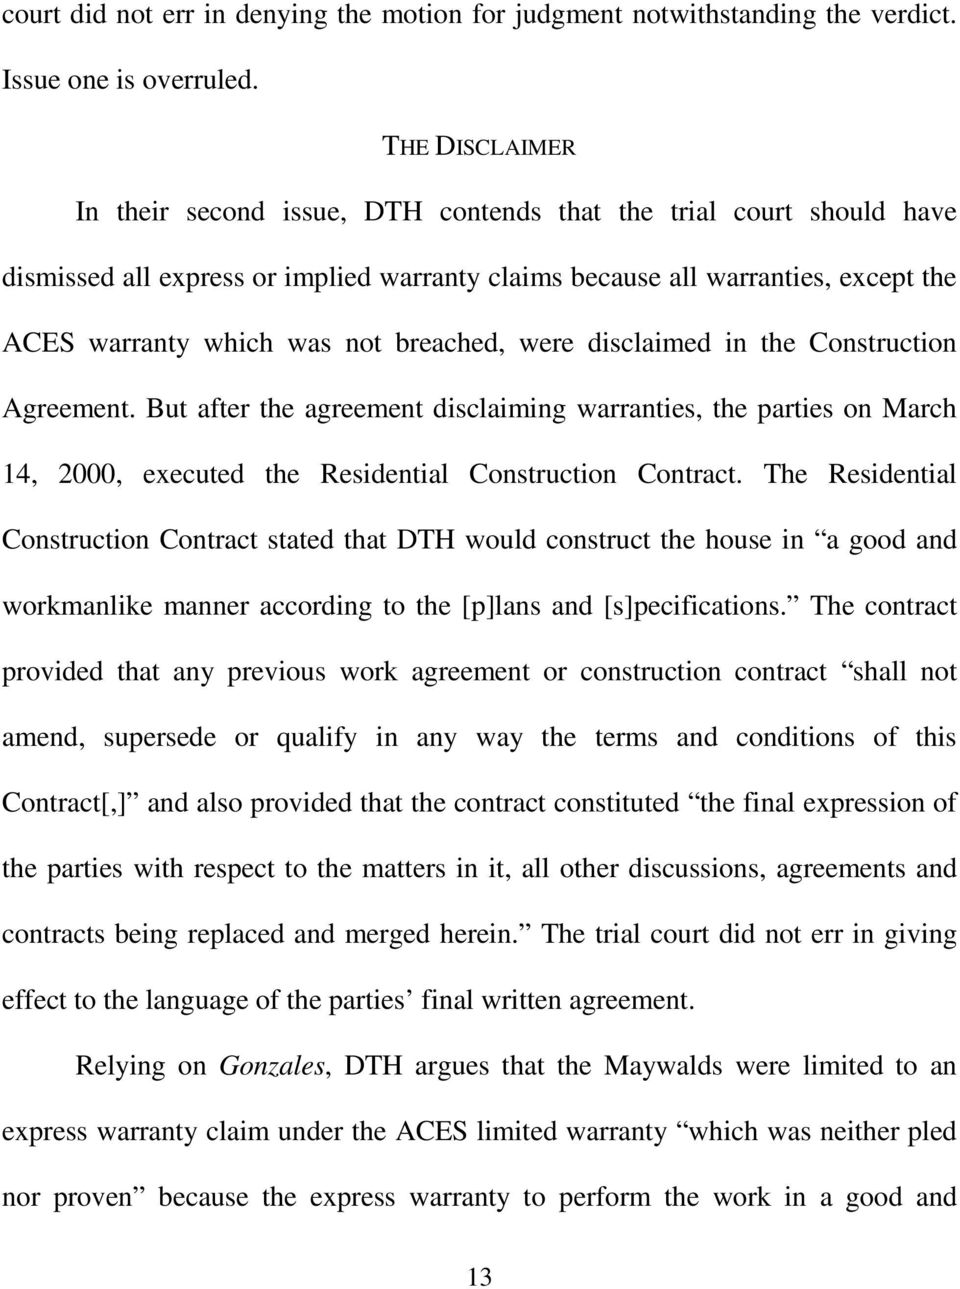 breached, were disclaimed in the Construction Agreement. But after the agreement disclaiming warranties, the parties on March 14, 2000, executed the Residential Construction Contract.